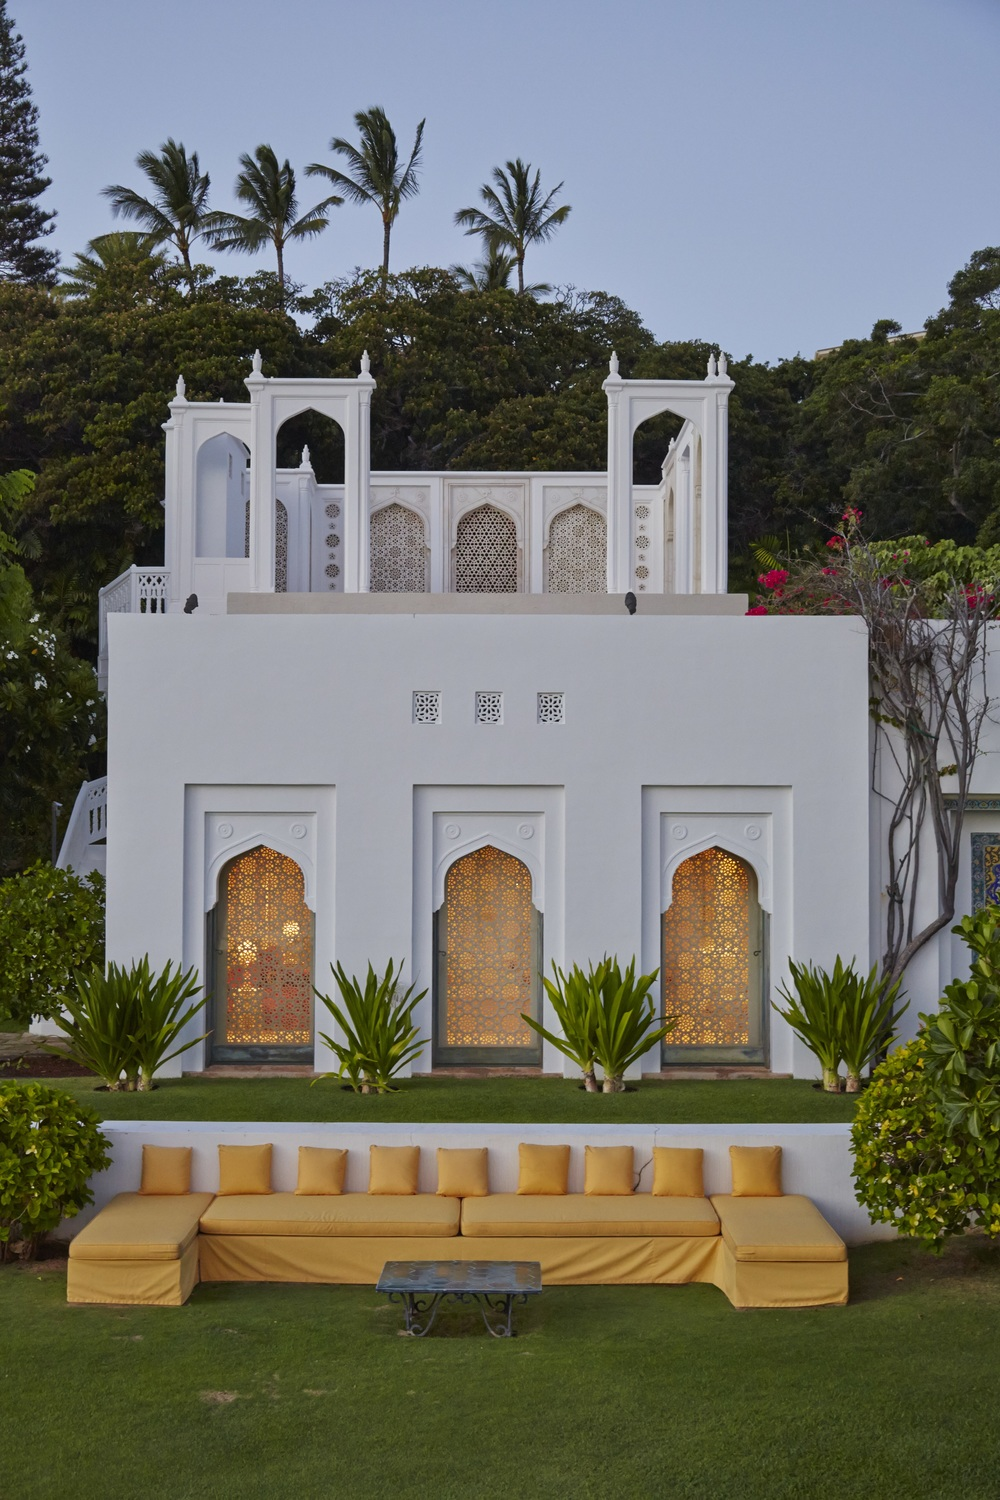 Exterior of the Mughal Suite at Shangri La. © 2014, Linny Morris, courtesy of the Doris Duke Foundation for Islamic Art, Honolulu, Hawai'i.